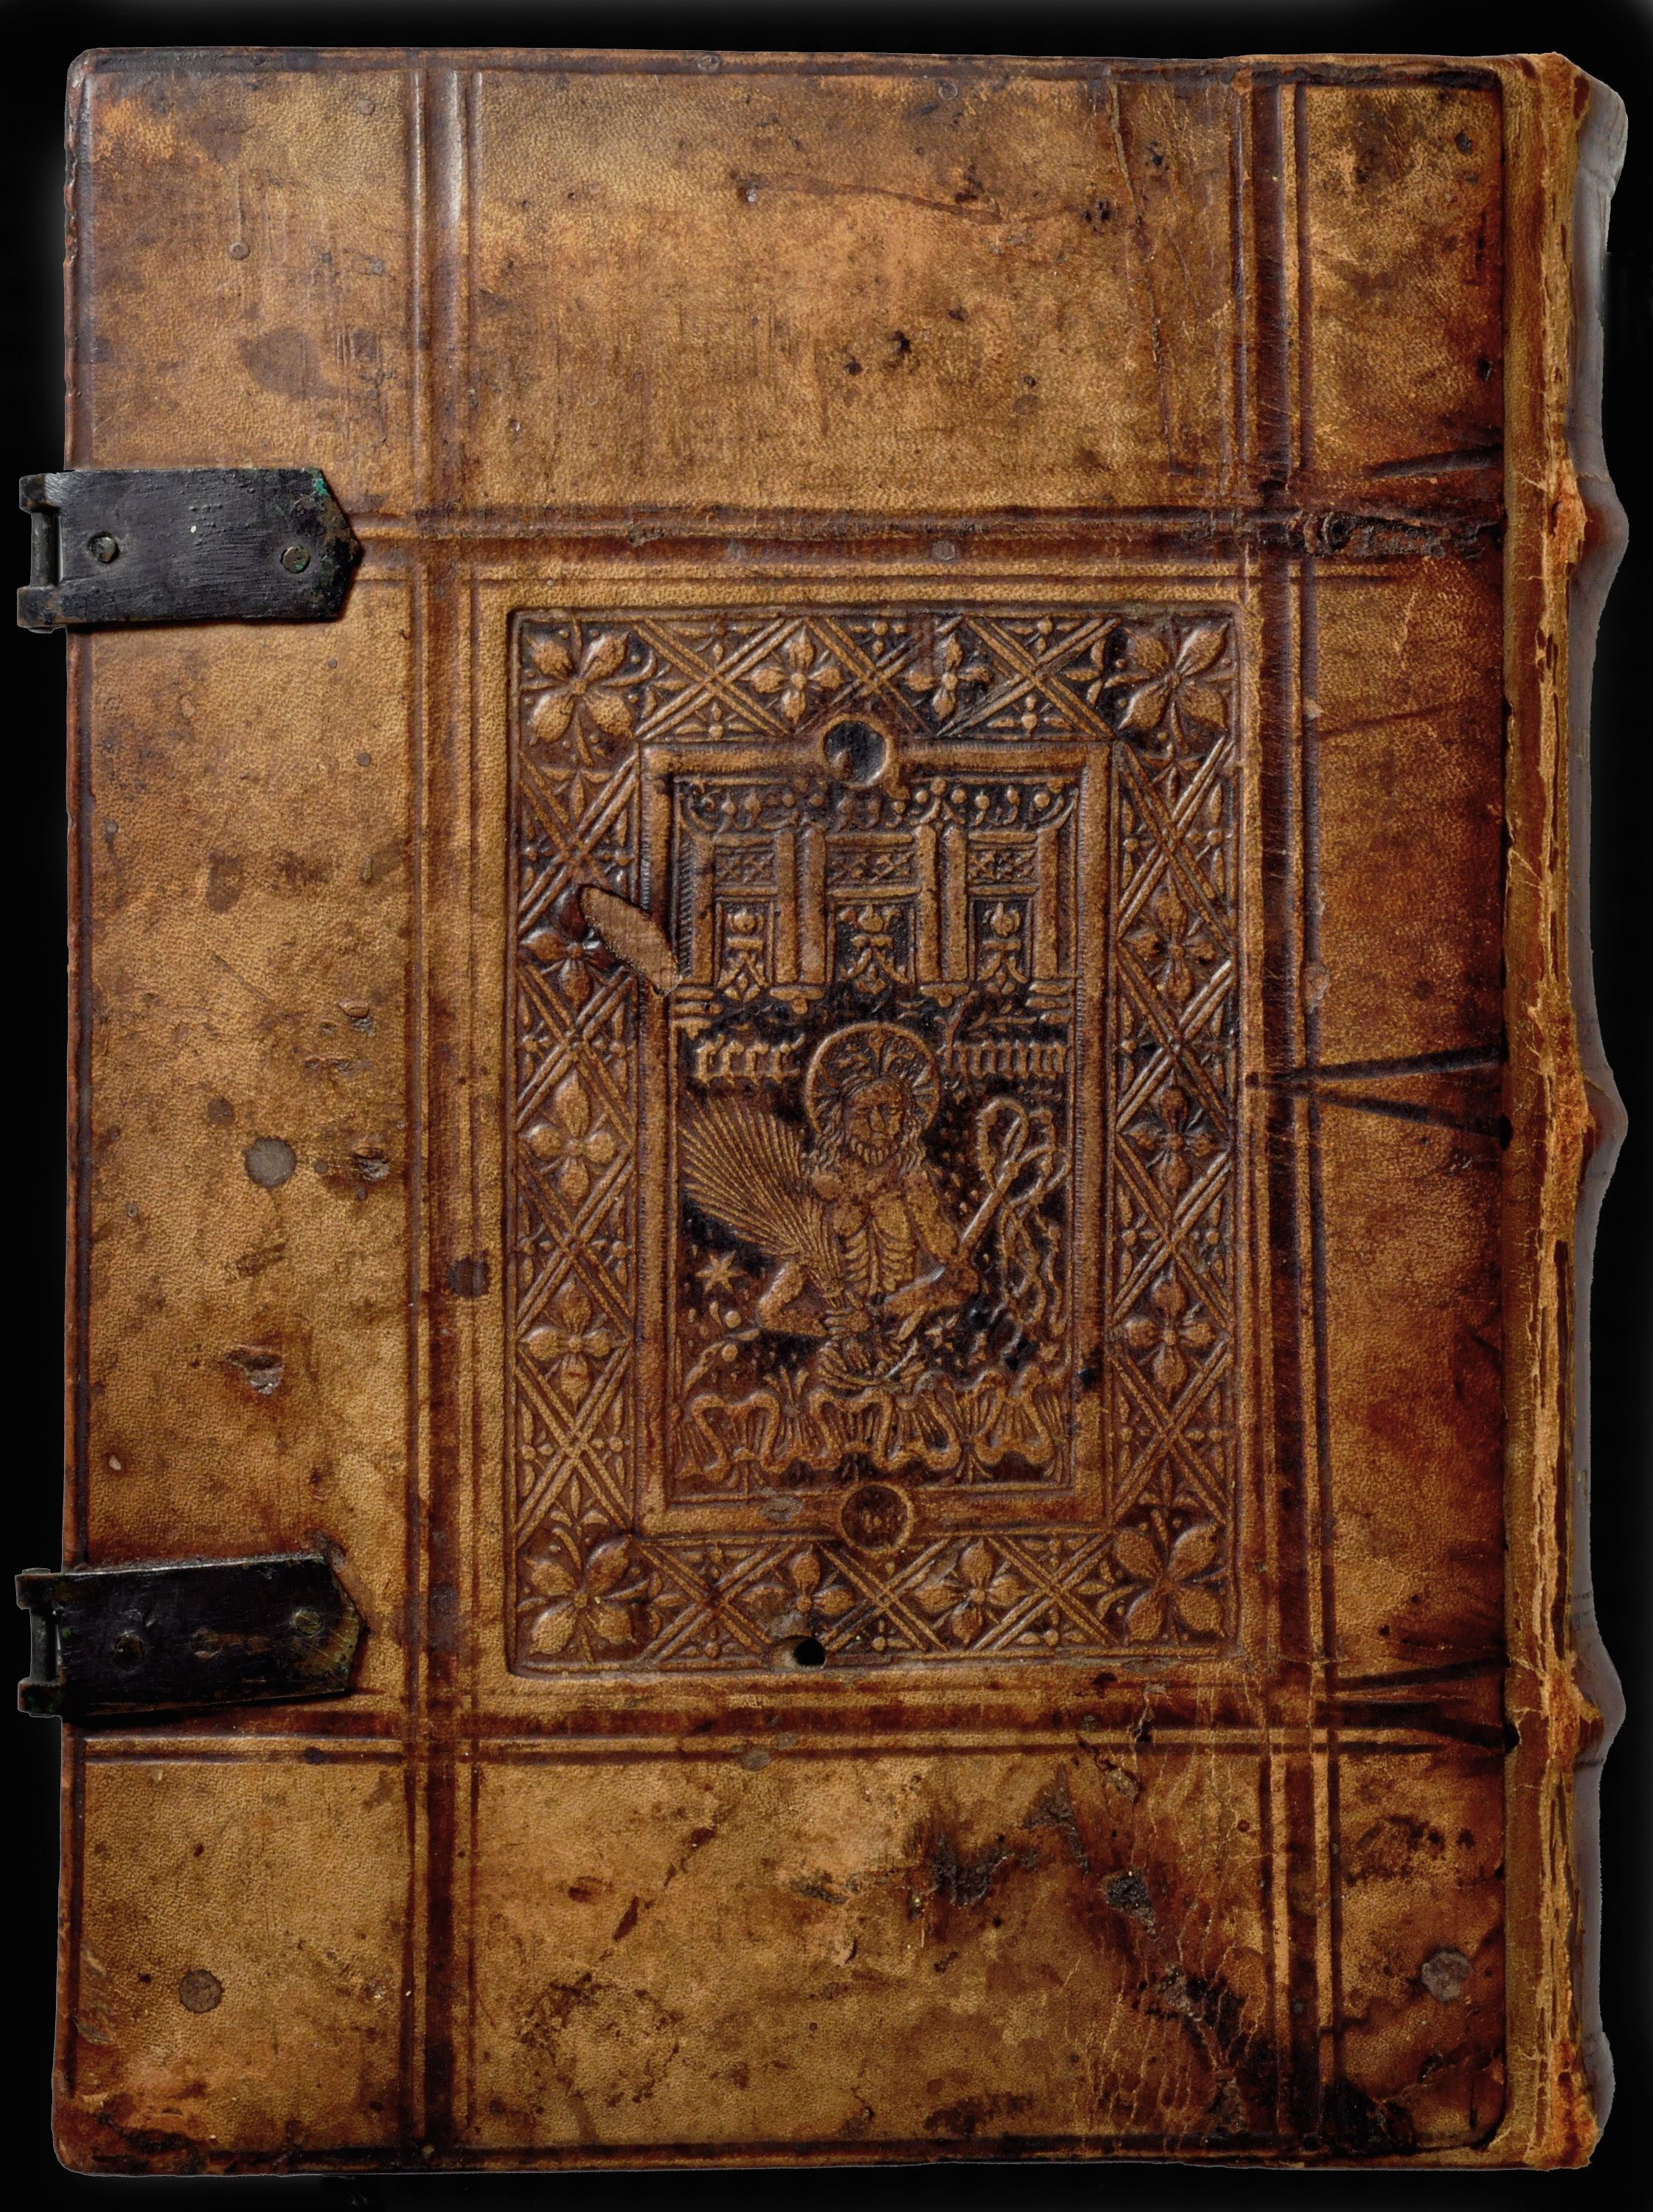 Bridwell Library Ancient Books Antique Books Vintage Book Covers